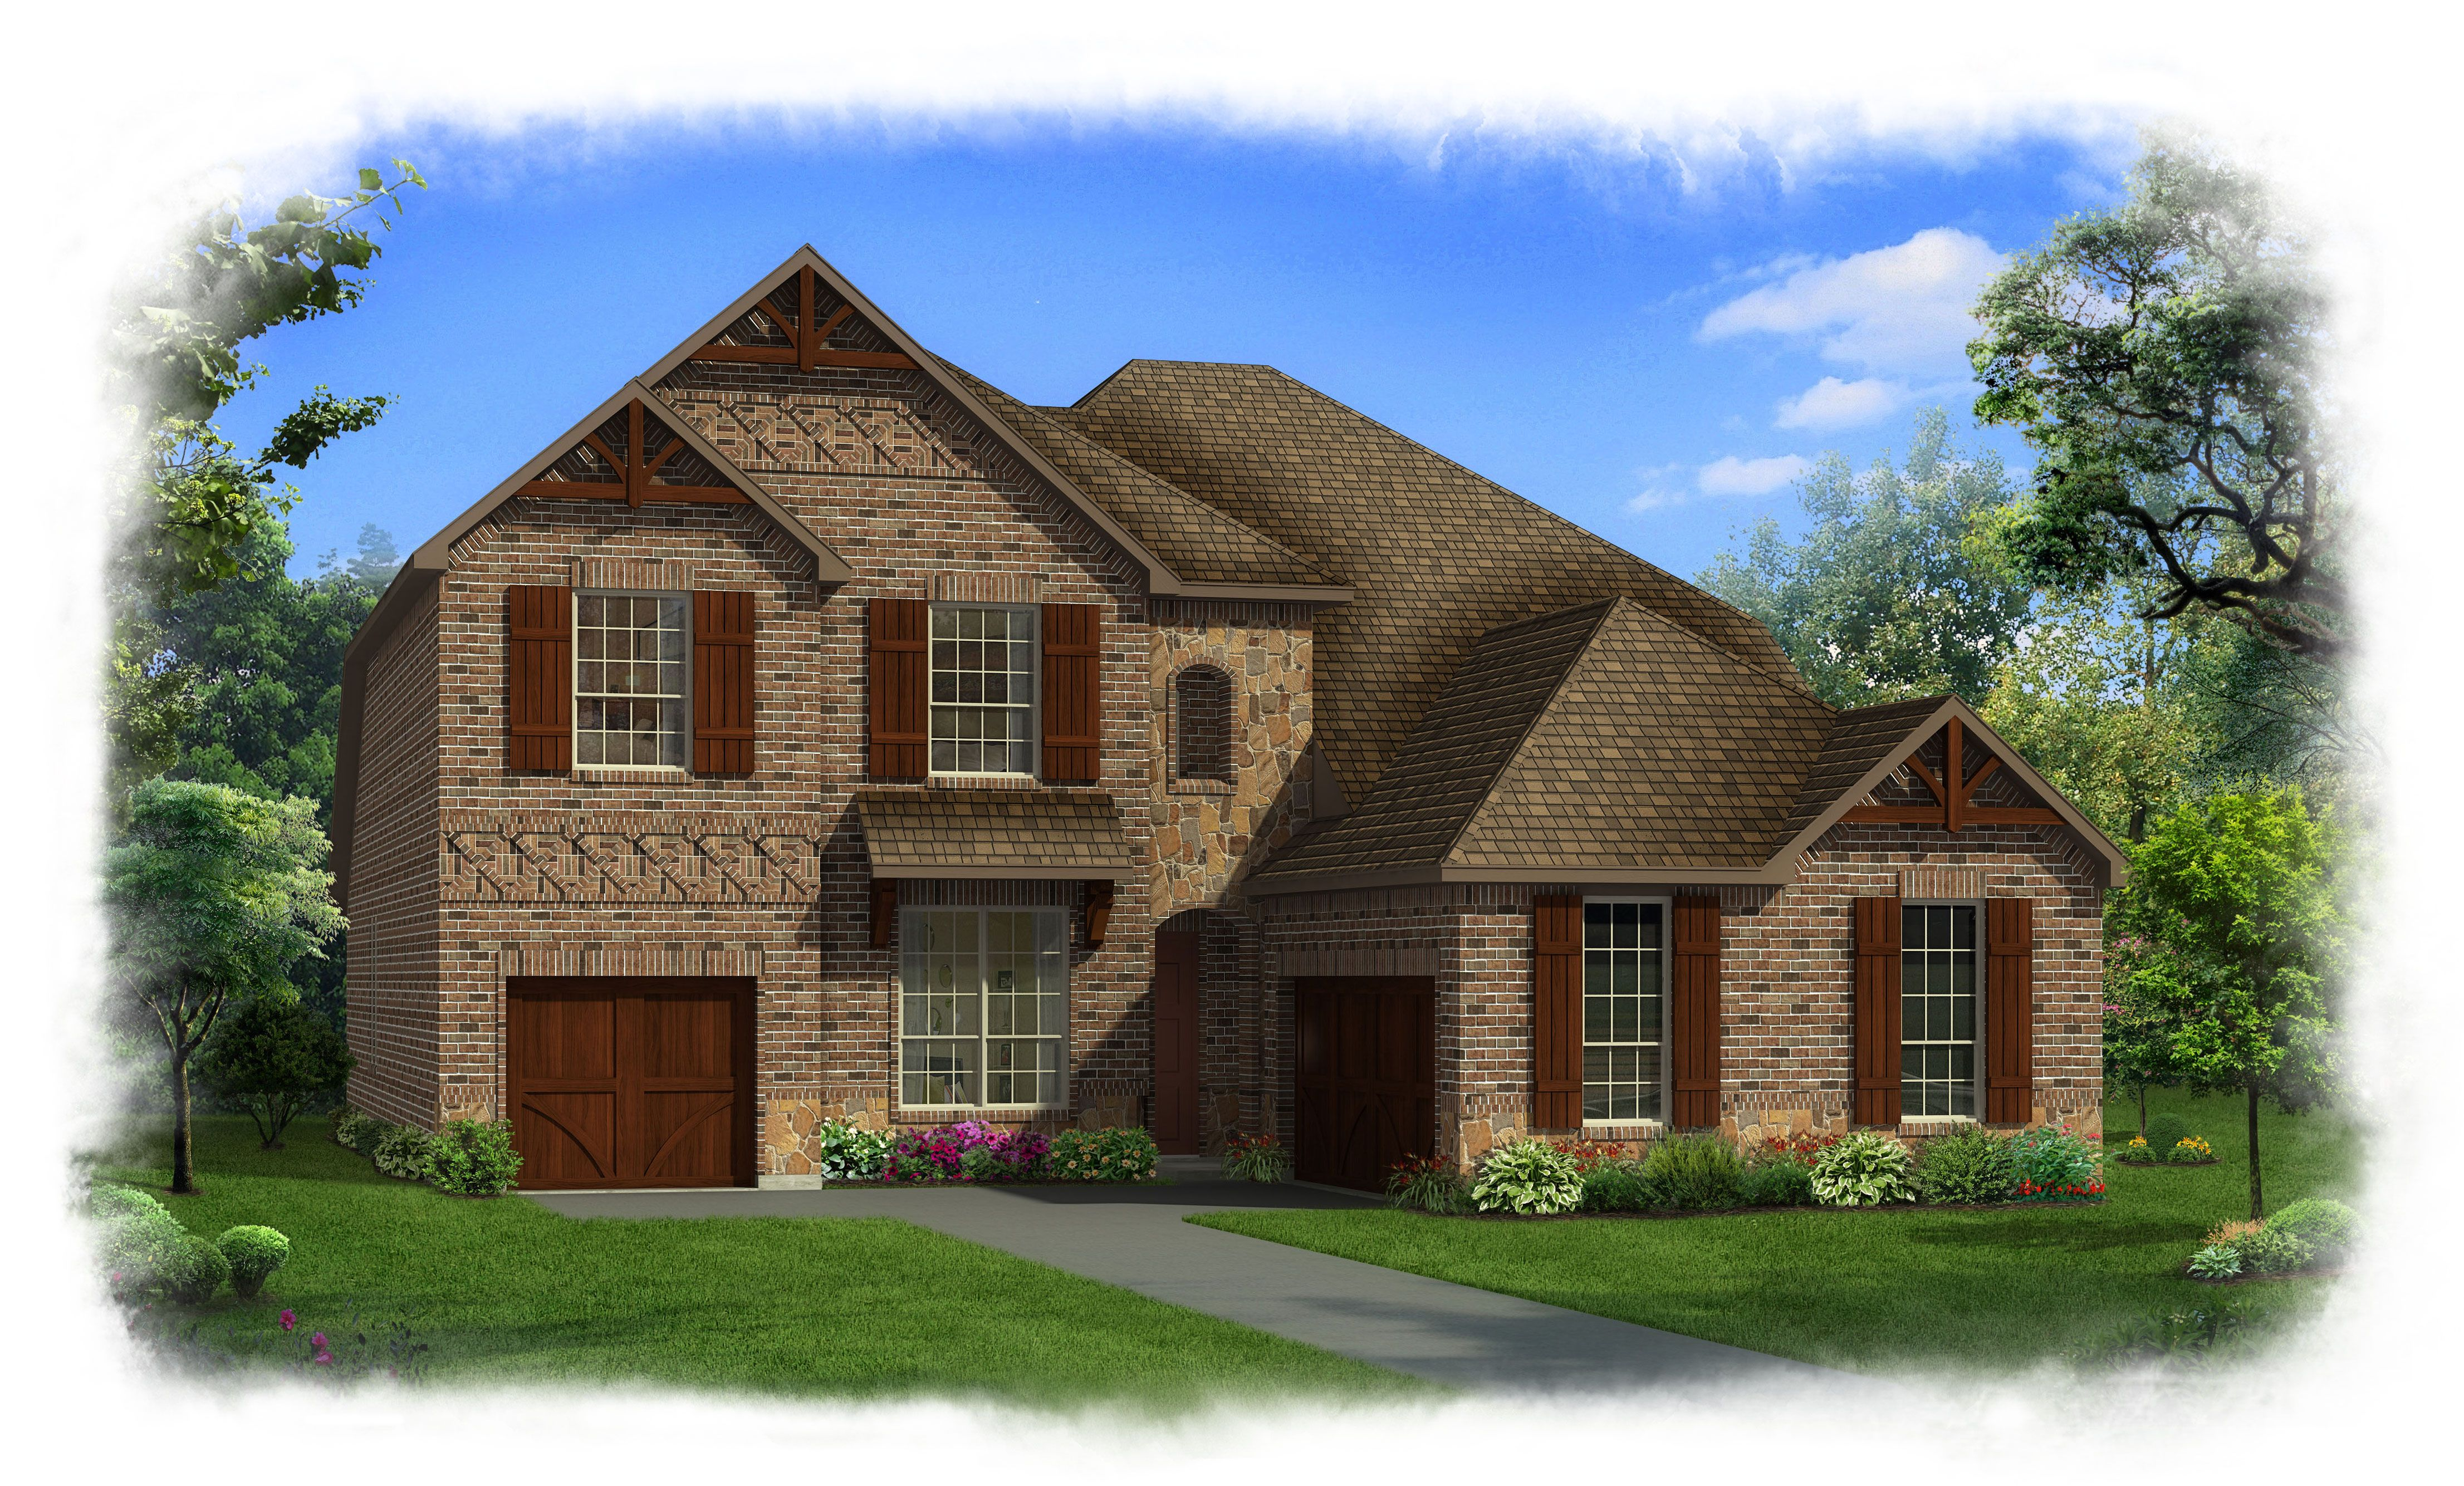 Rendition Homes New Home Plans in Fort Worth TX | NewHomeSource